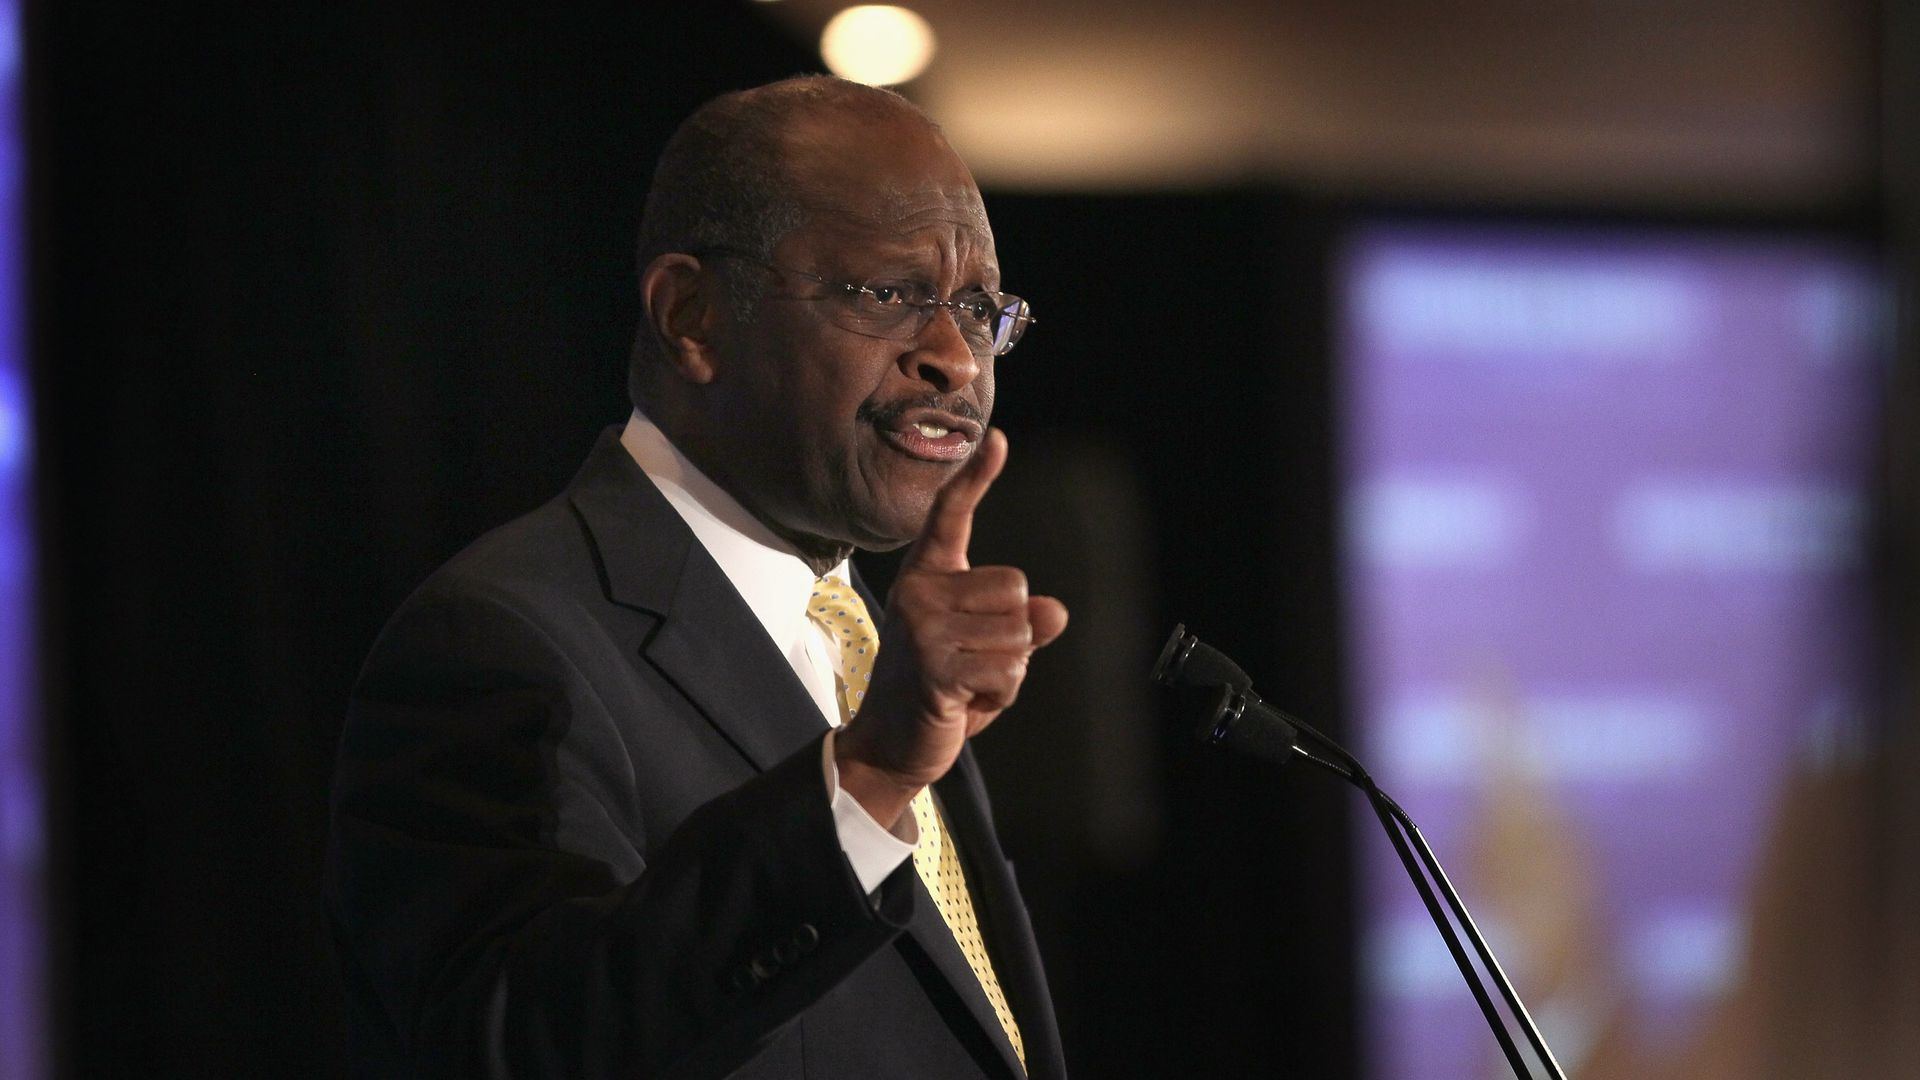 In this image, Herman Cain points a finger in the air while speaking into a microphone.